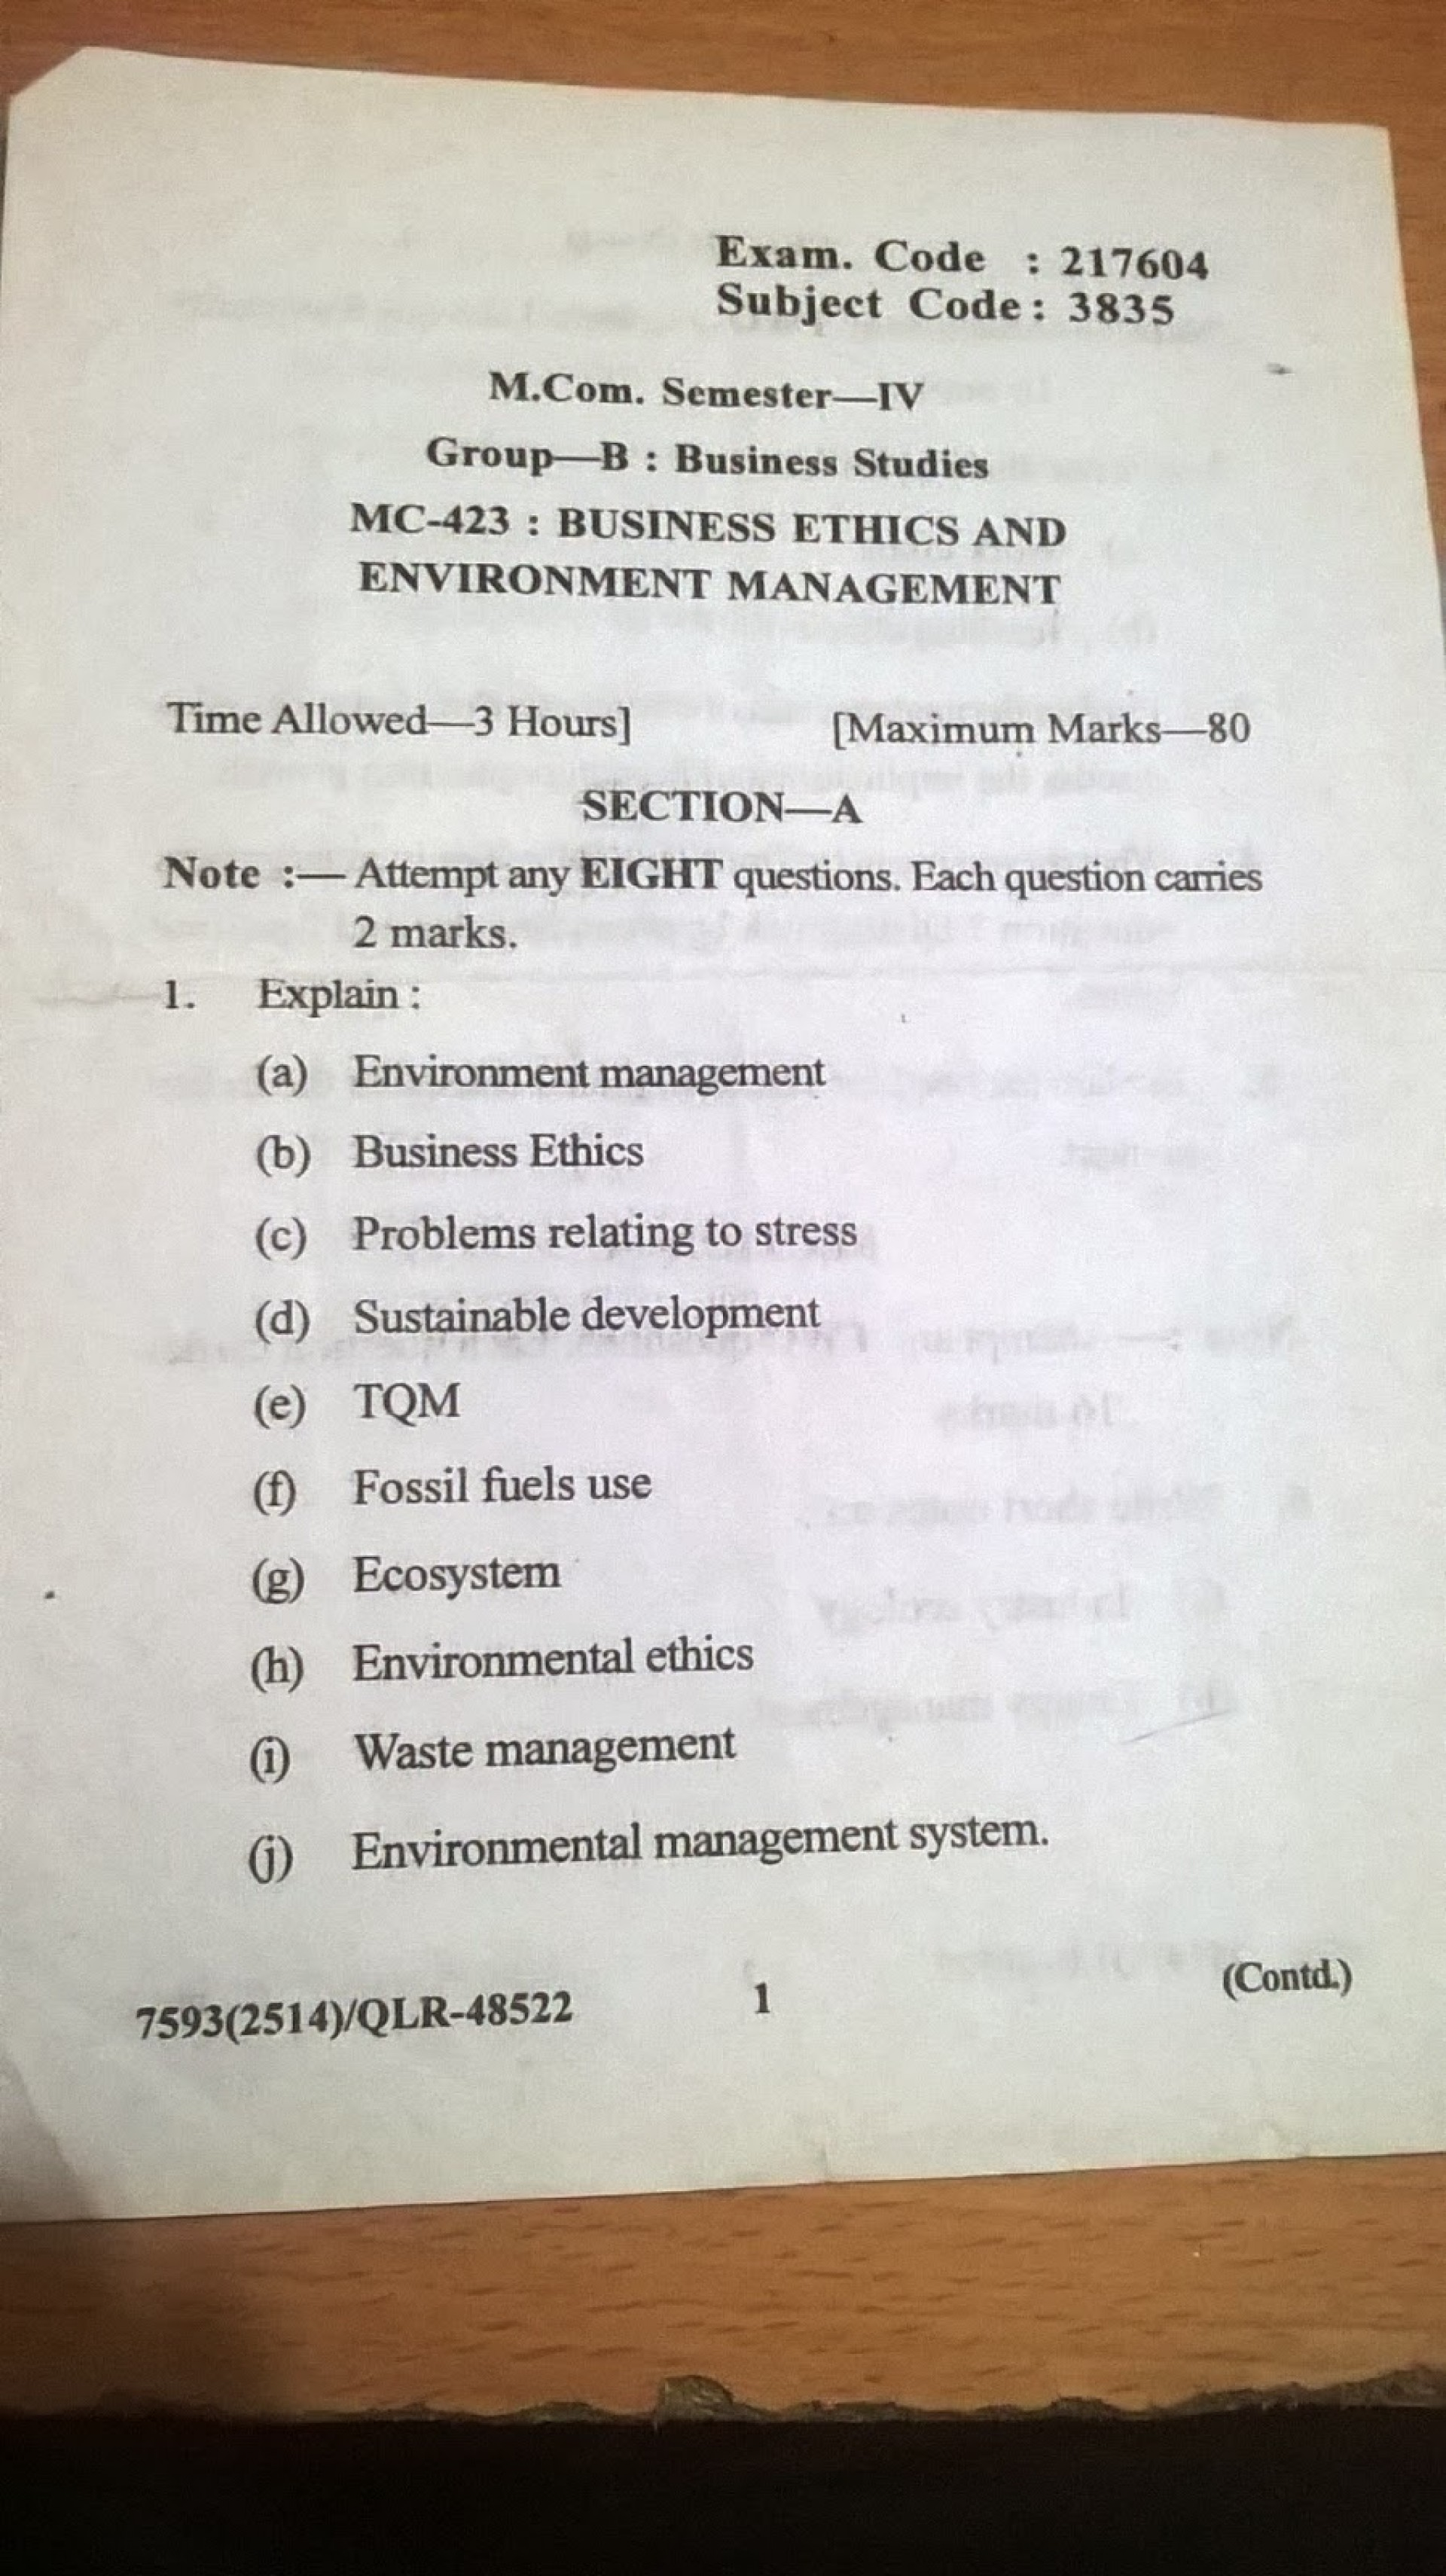 025 Research Paper Business Management Topic For Businessethicsandenviornmentmanagement4thsem Unforgettable Topics Techniques Pdf 1920